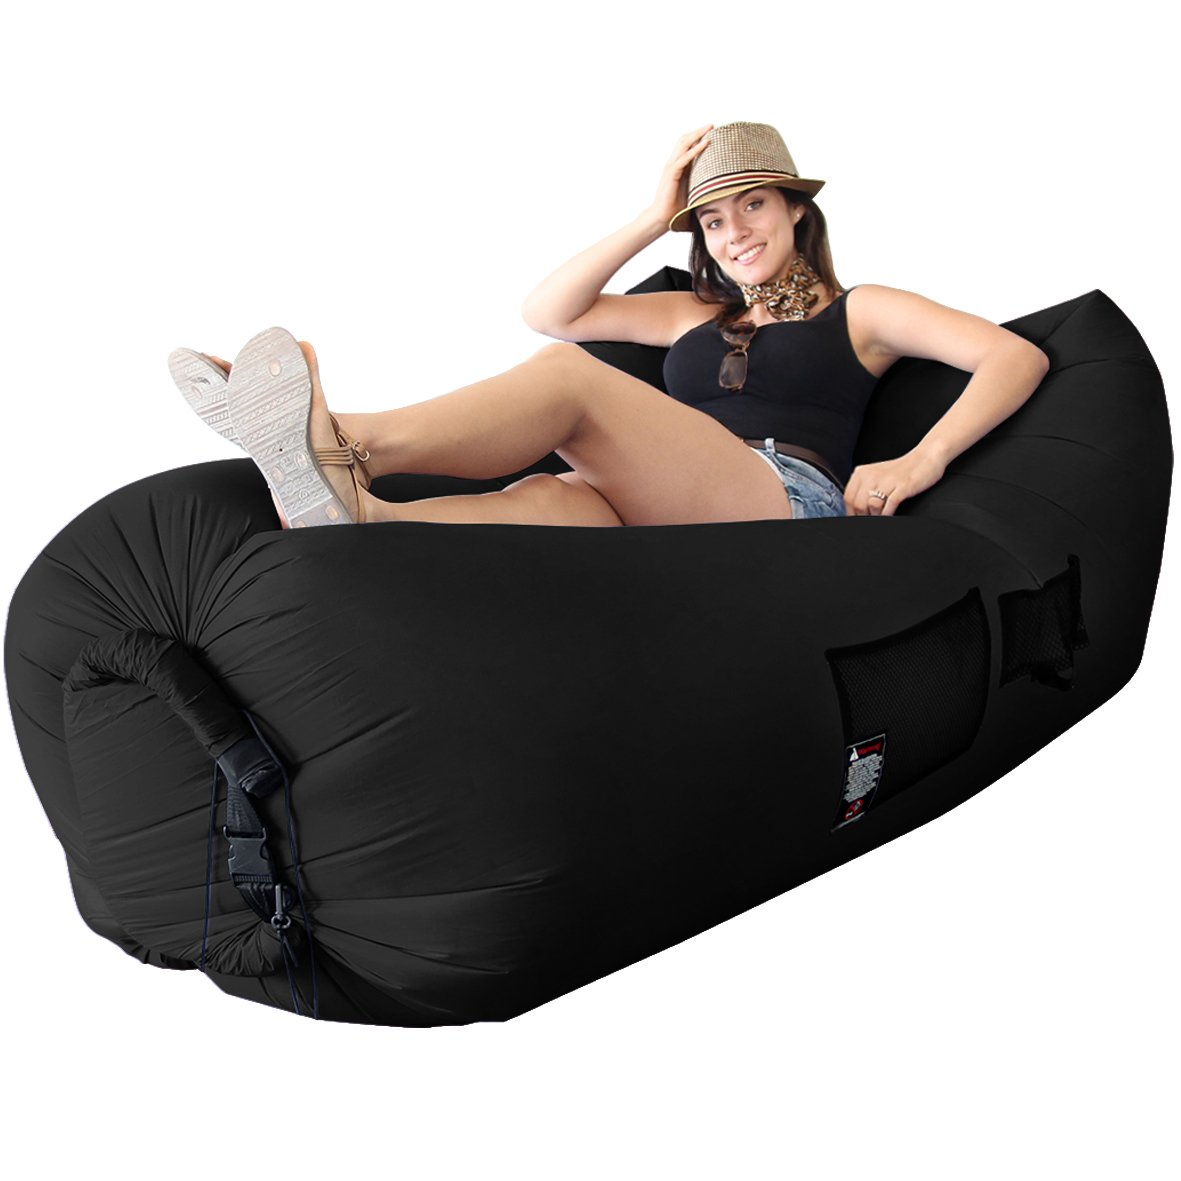 Best Selling Woohoo 3.0 Giant Outdoor Inflatable Lounger with Carry Bag – Air Lounger – エアソファ – Patent Pending – 簡単に凸レンズ新しいテクノロジー B072KPX44C ブラック ブラック